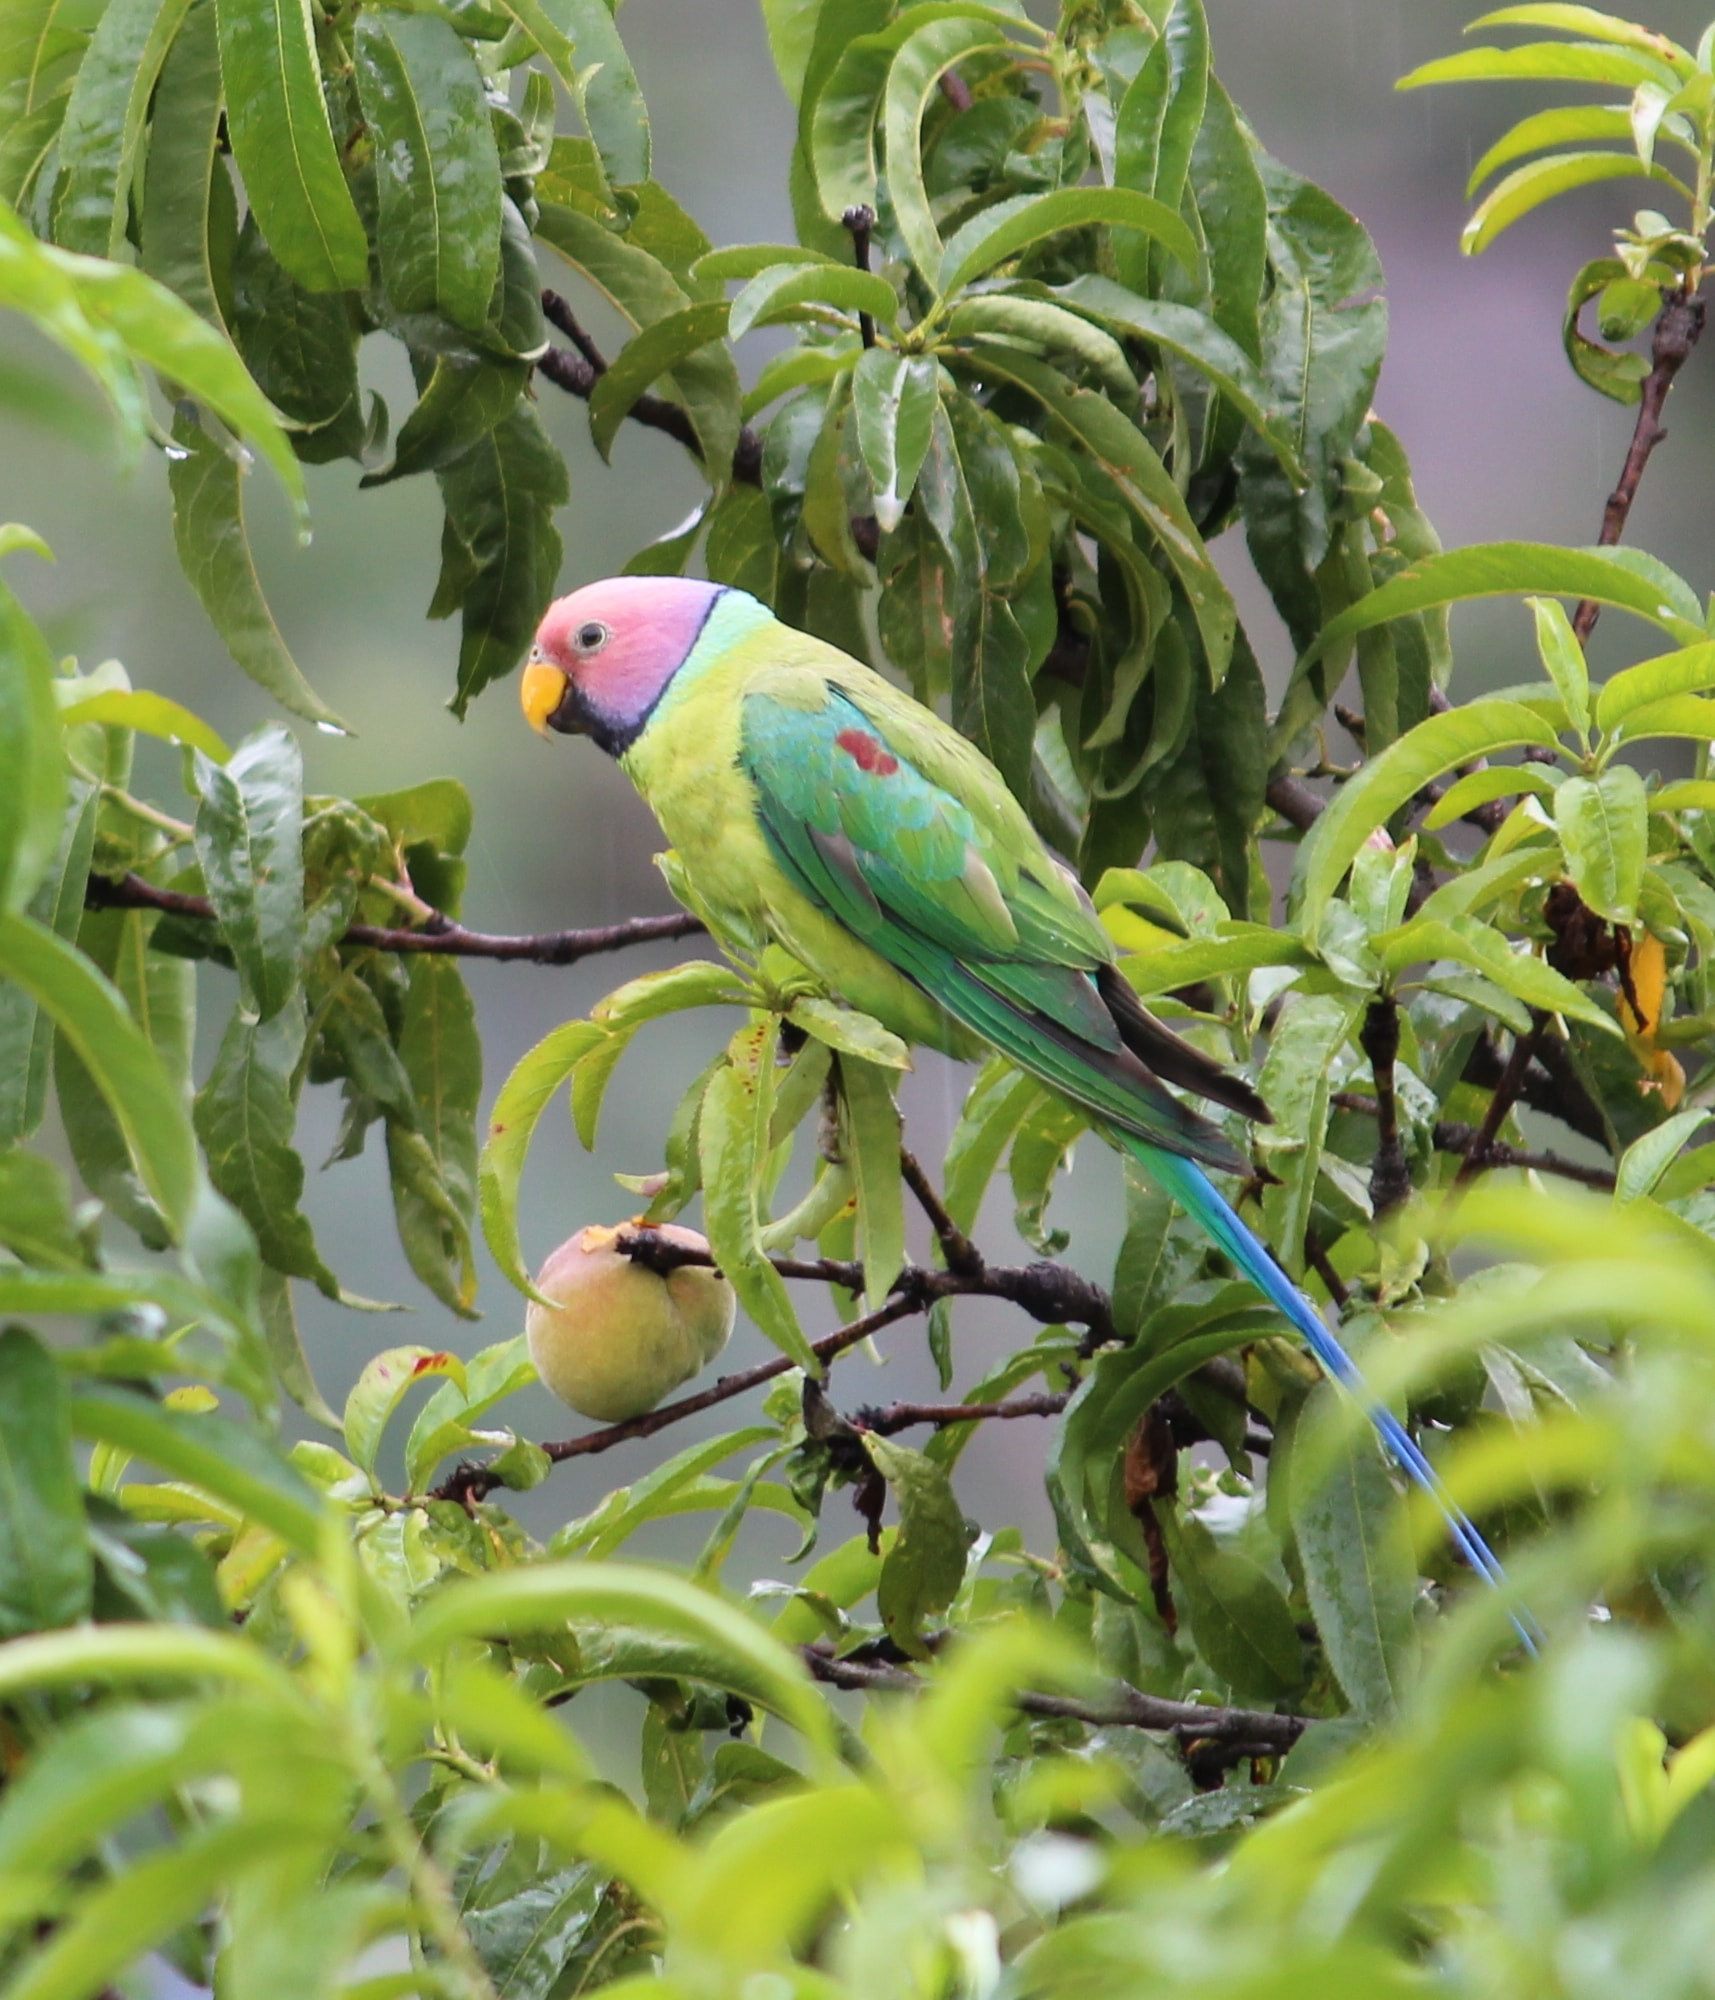 The Plum Headed Parrot beautifully camouflaged with the leaves of the Peach tree and was dedicatedly eyeing on the ripe peaches.